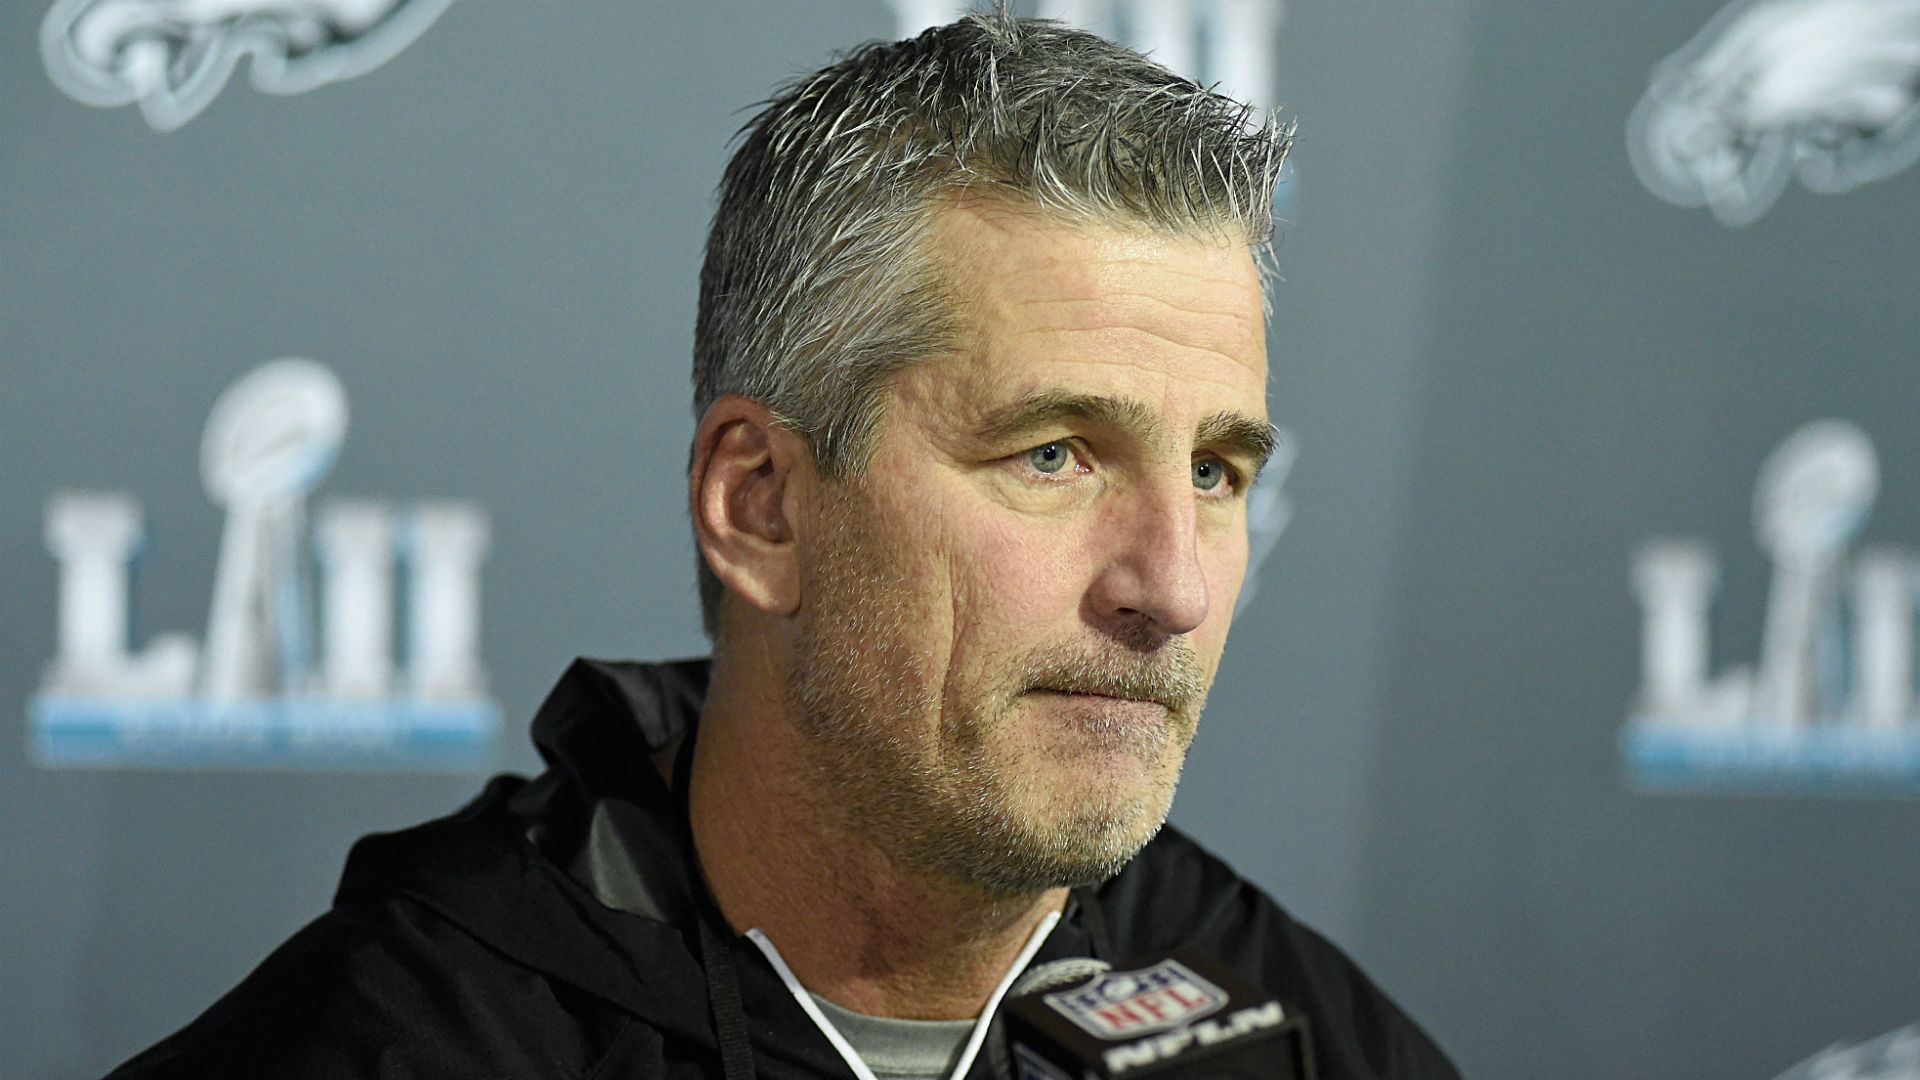 Eagles coordinator Frank Reich set to become Colts' head coach